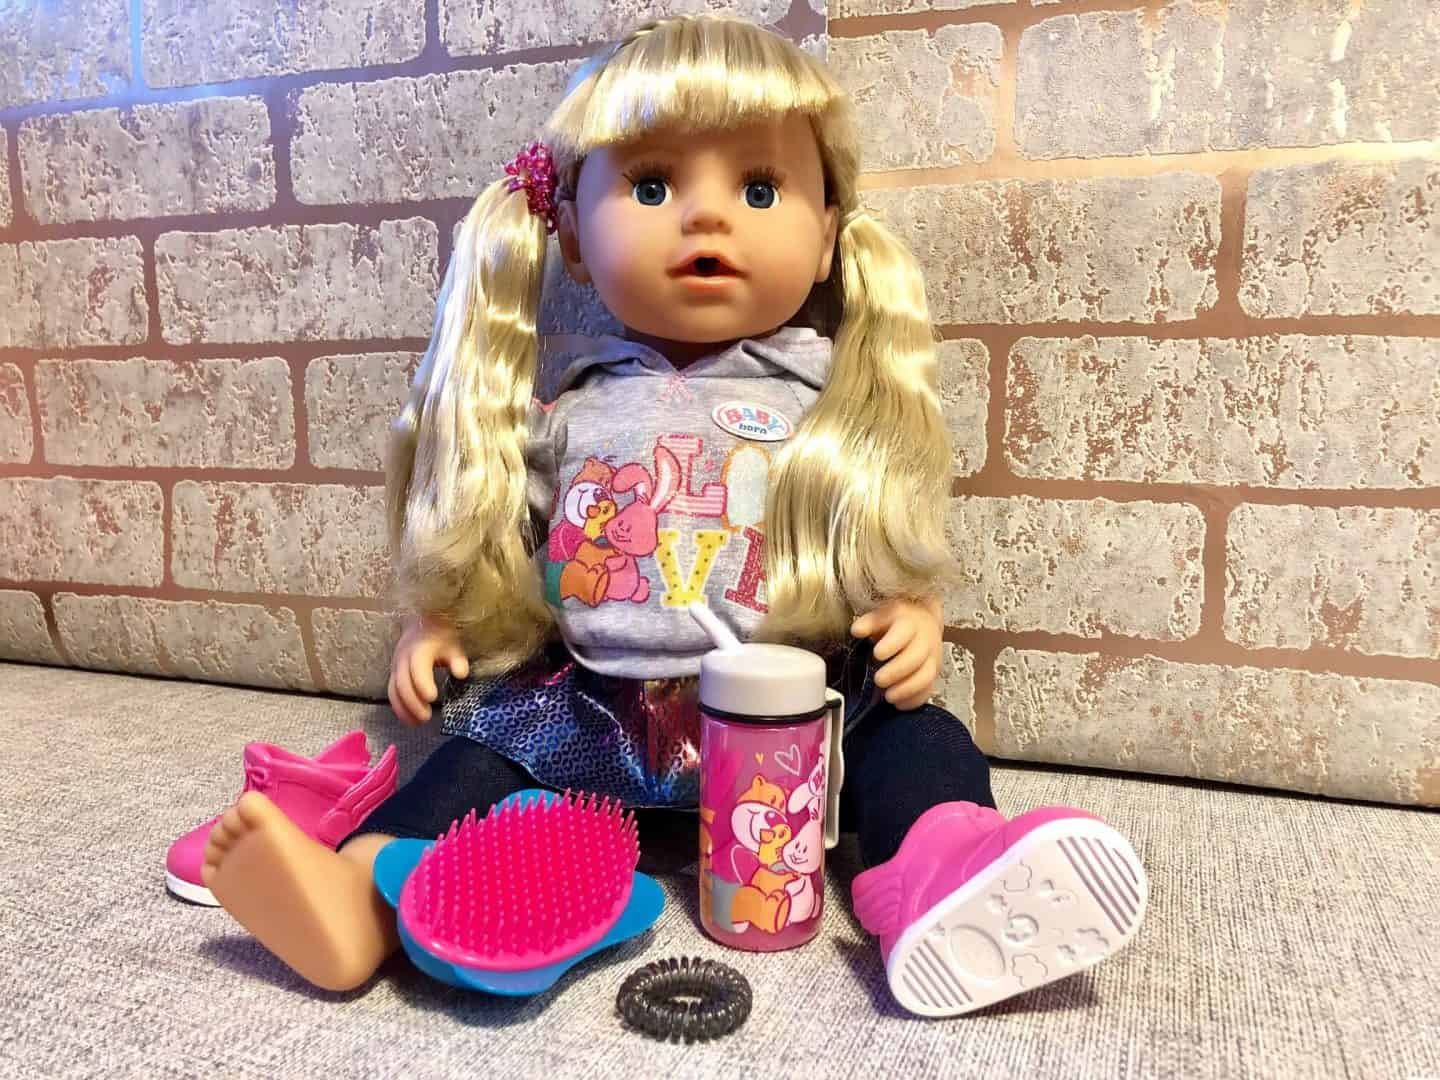 Baby-Born-Soft-Touch-Sister-with-hairbrush-and-beaker